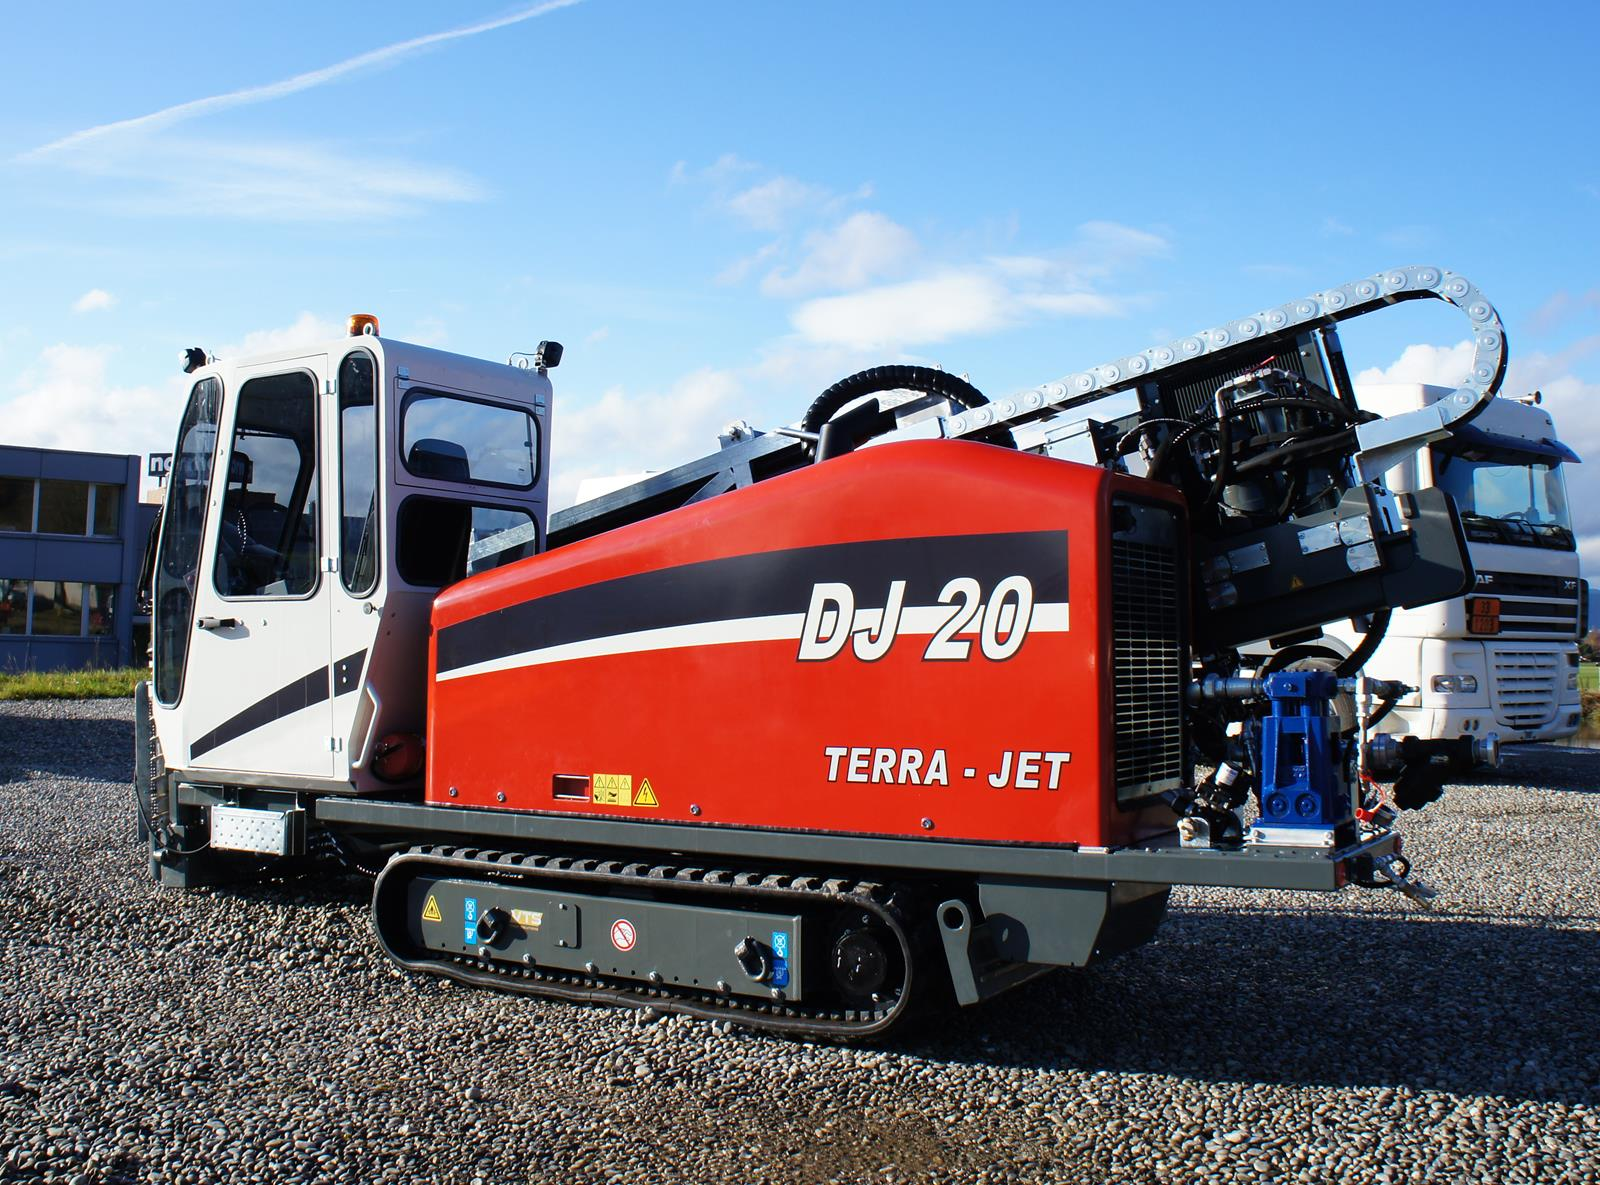 One of the most productive 9 tonnes HDD drill rigs in its class - the DJ 20